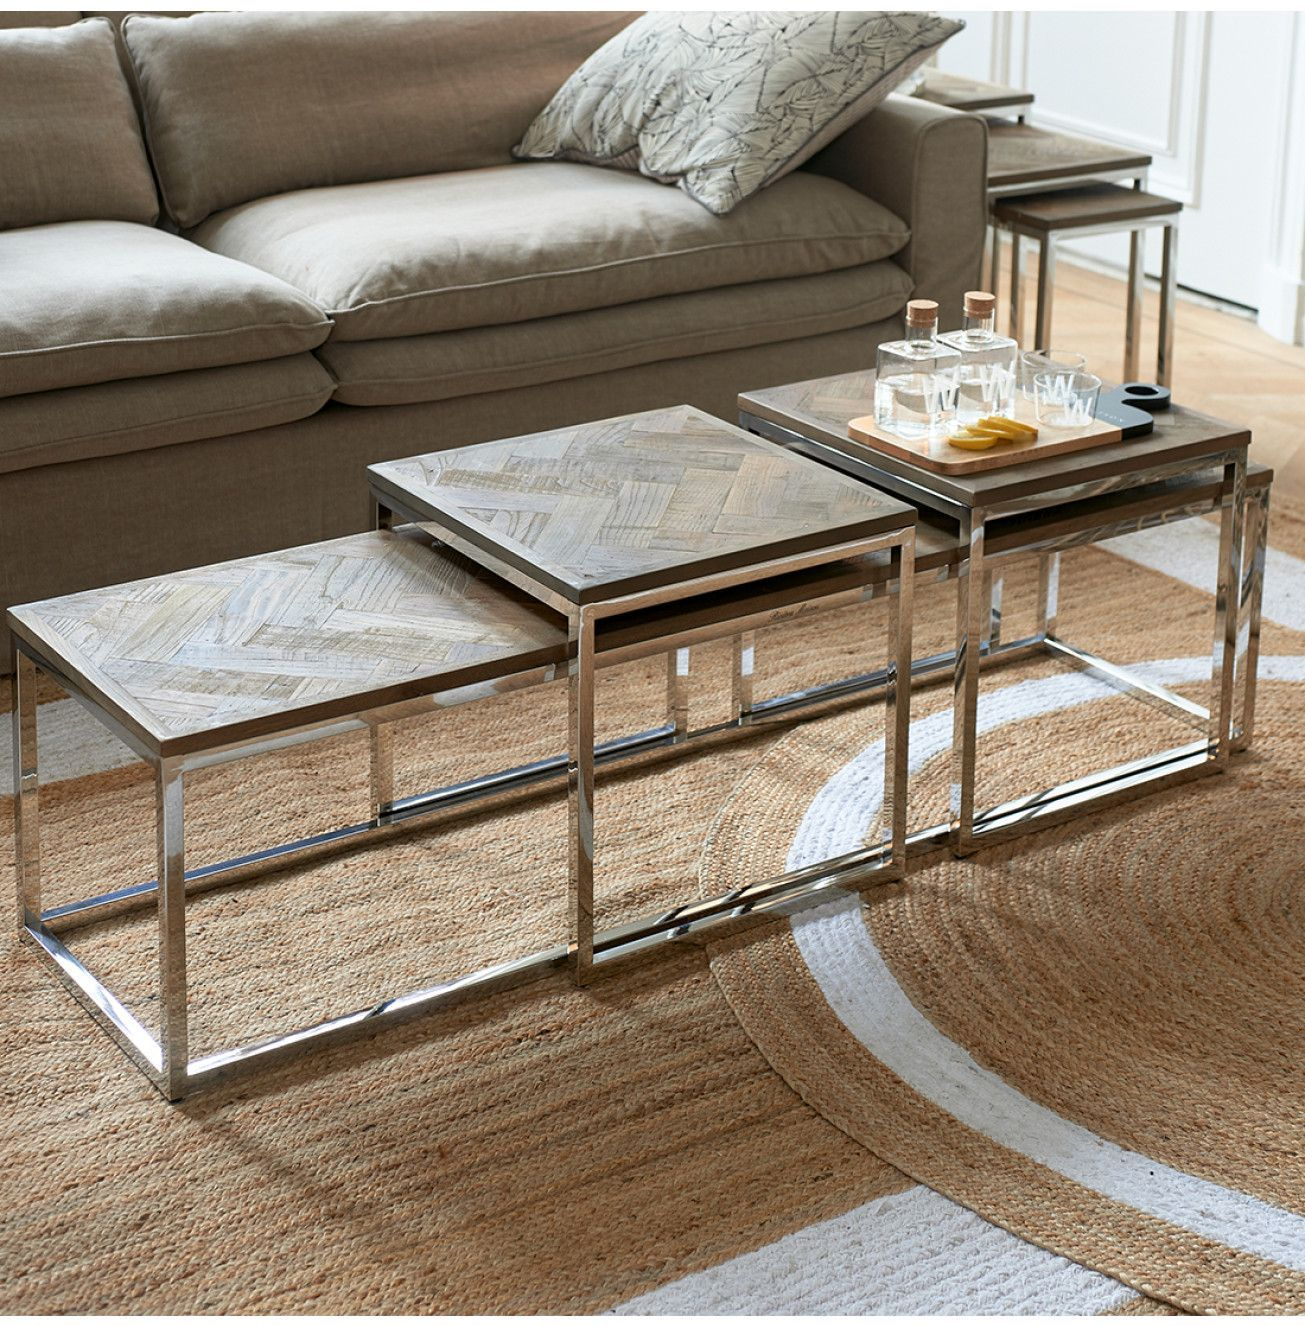 Pin On Coffee Table Ideas